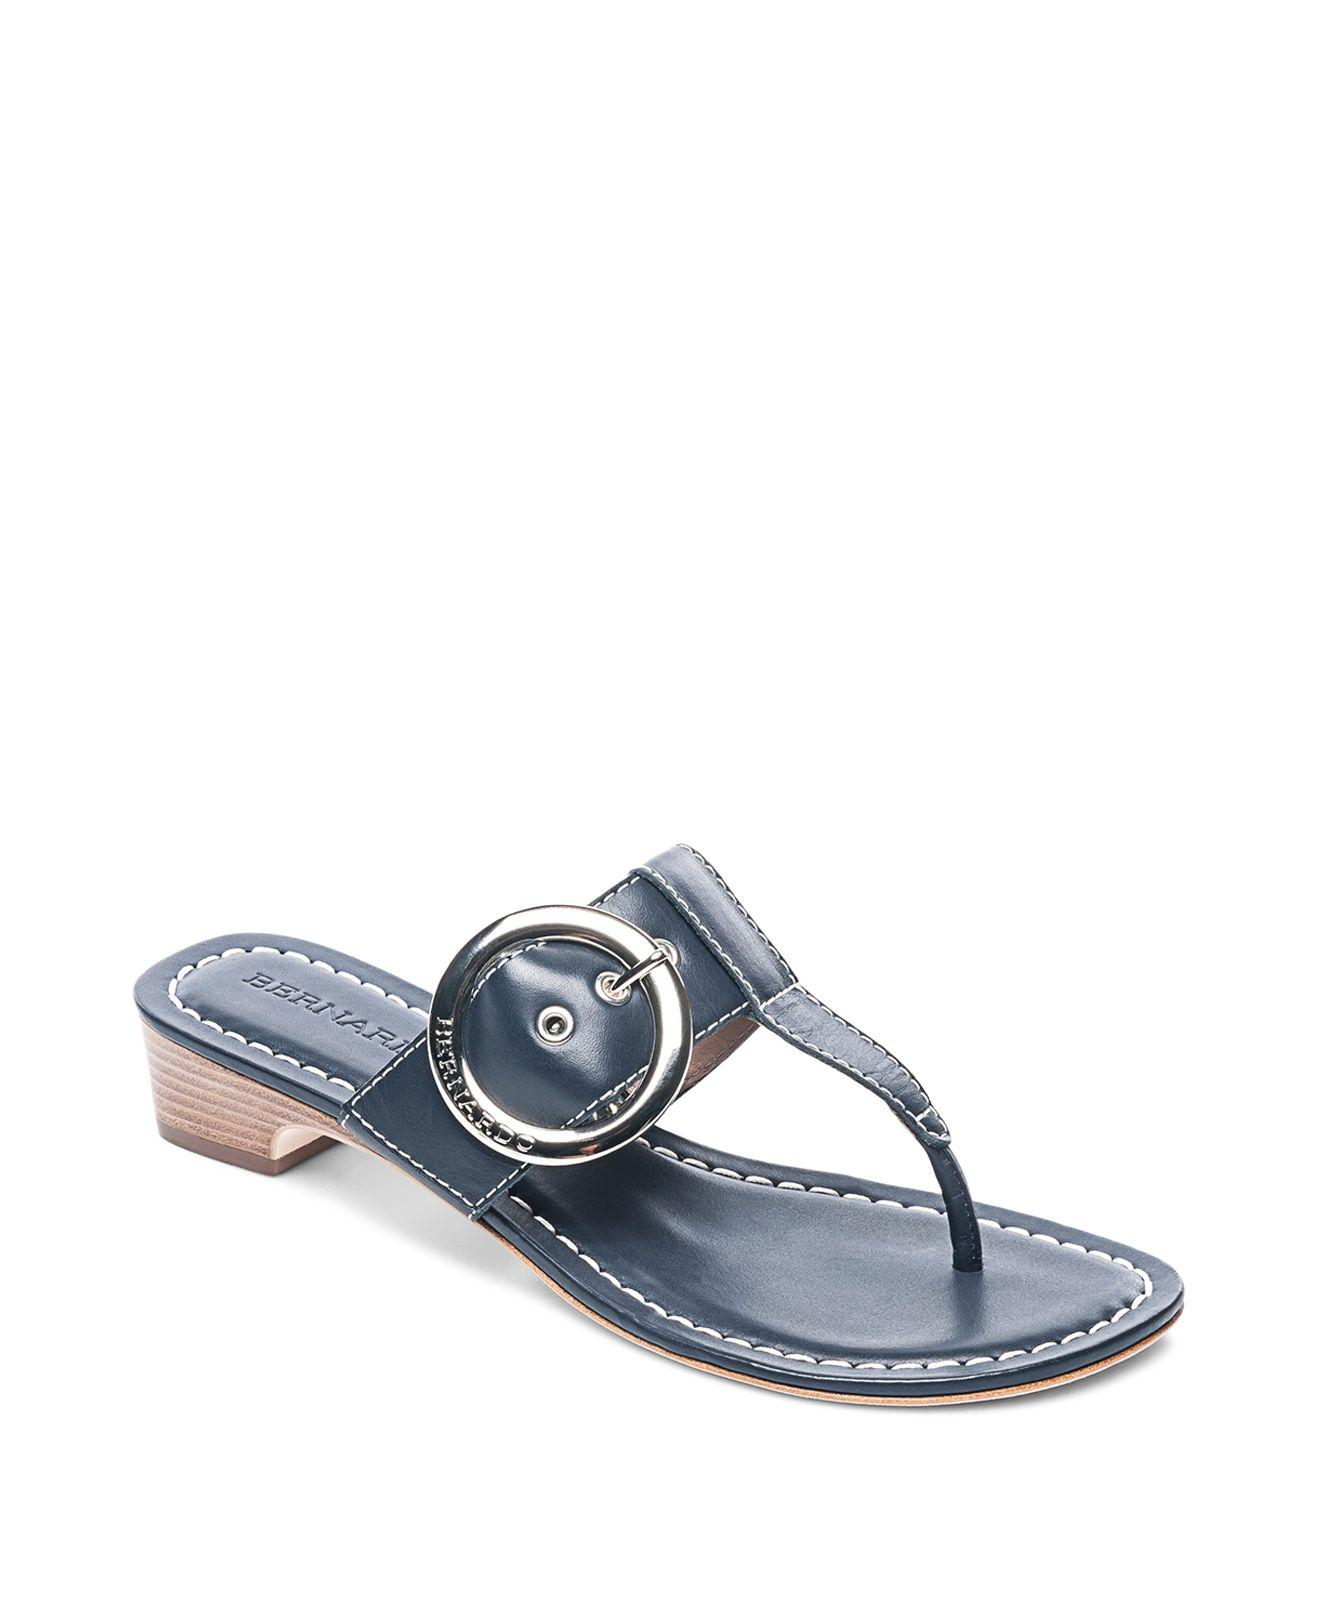 Bernardo Women's Leather Buckle Block Heel Thong Sandals Quality From China Cheap Factory Outlet Cheap Online Clearance Websites WJfRO6c